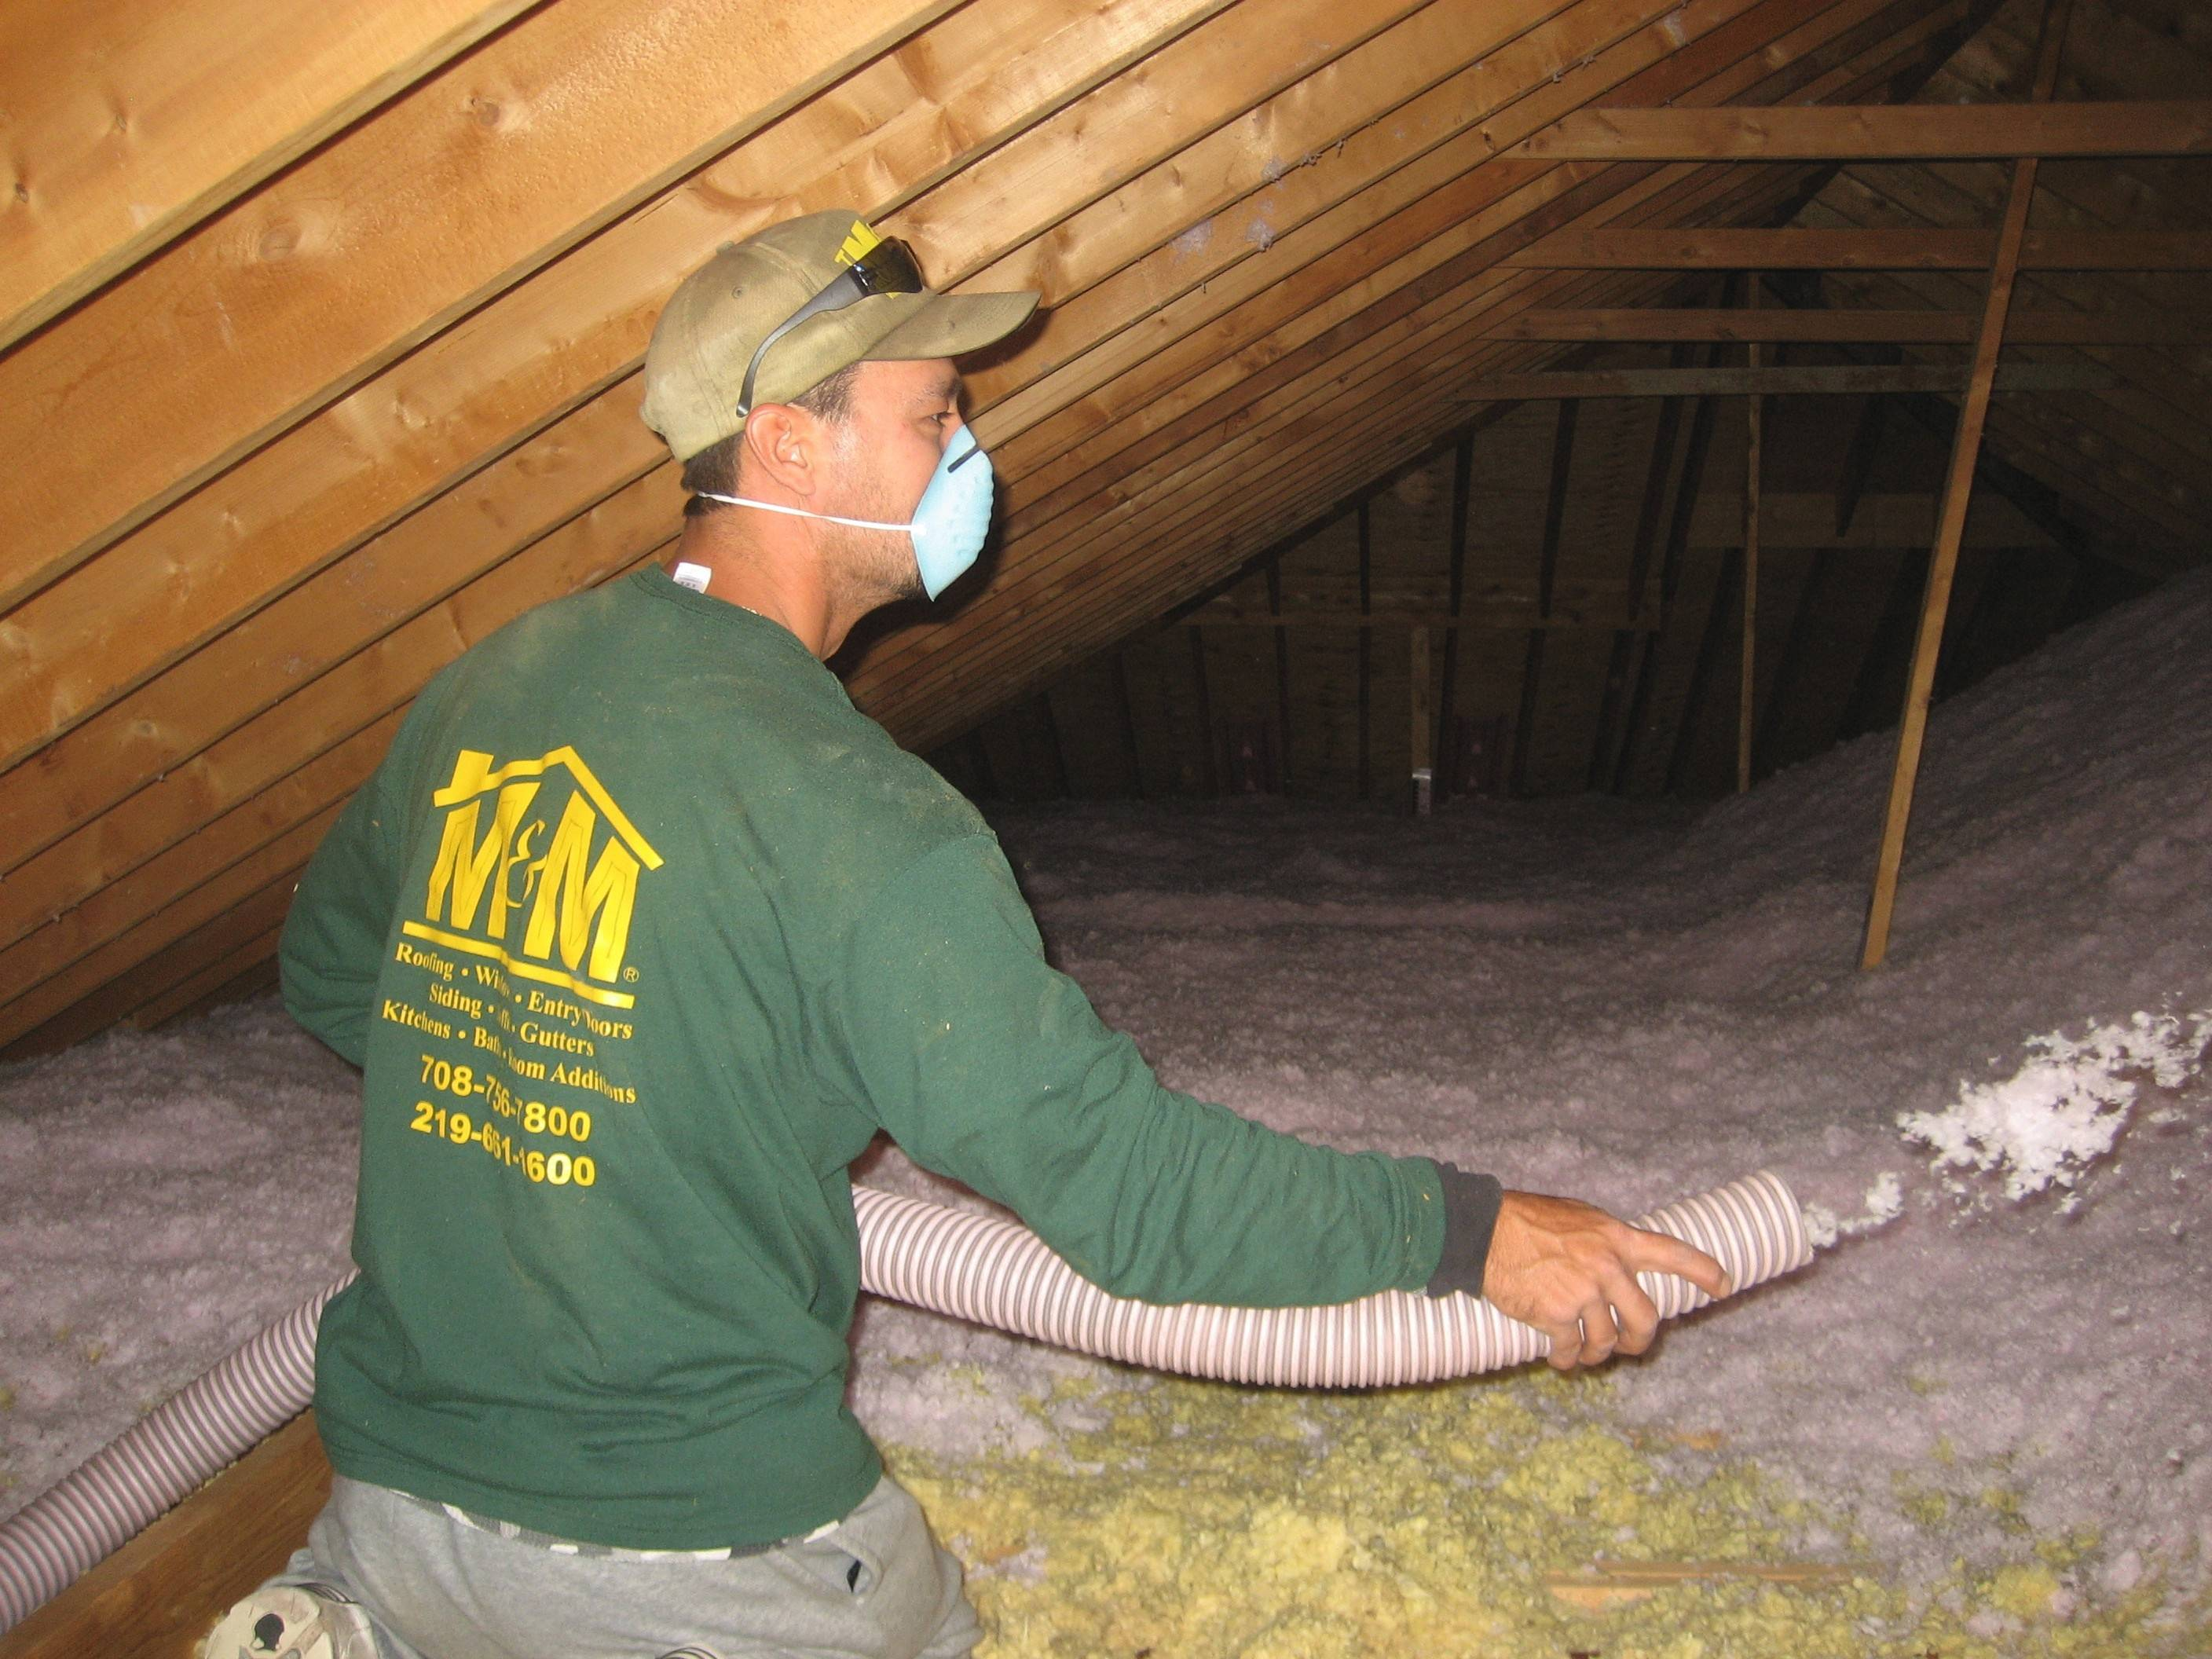 Adding insulation to the attic is one of the wisest investments a homeowner can make.